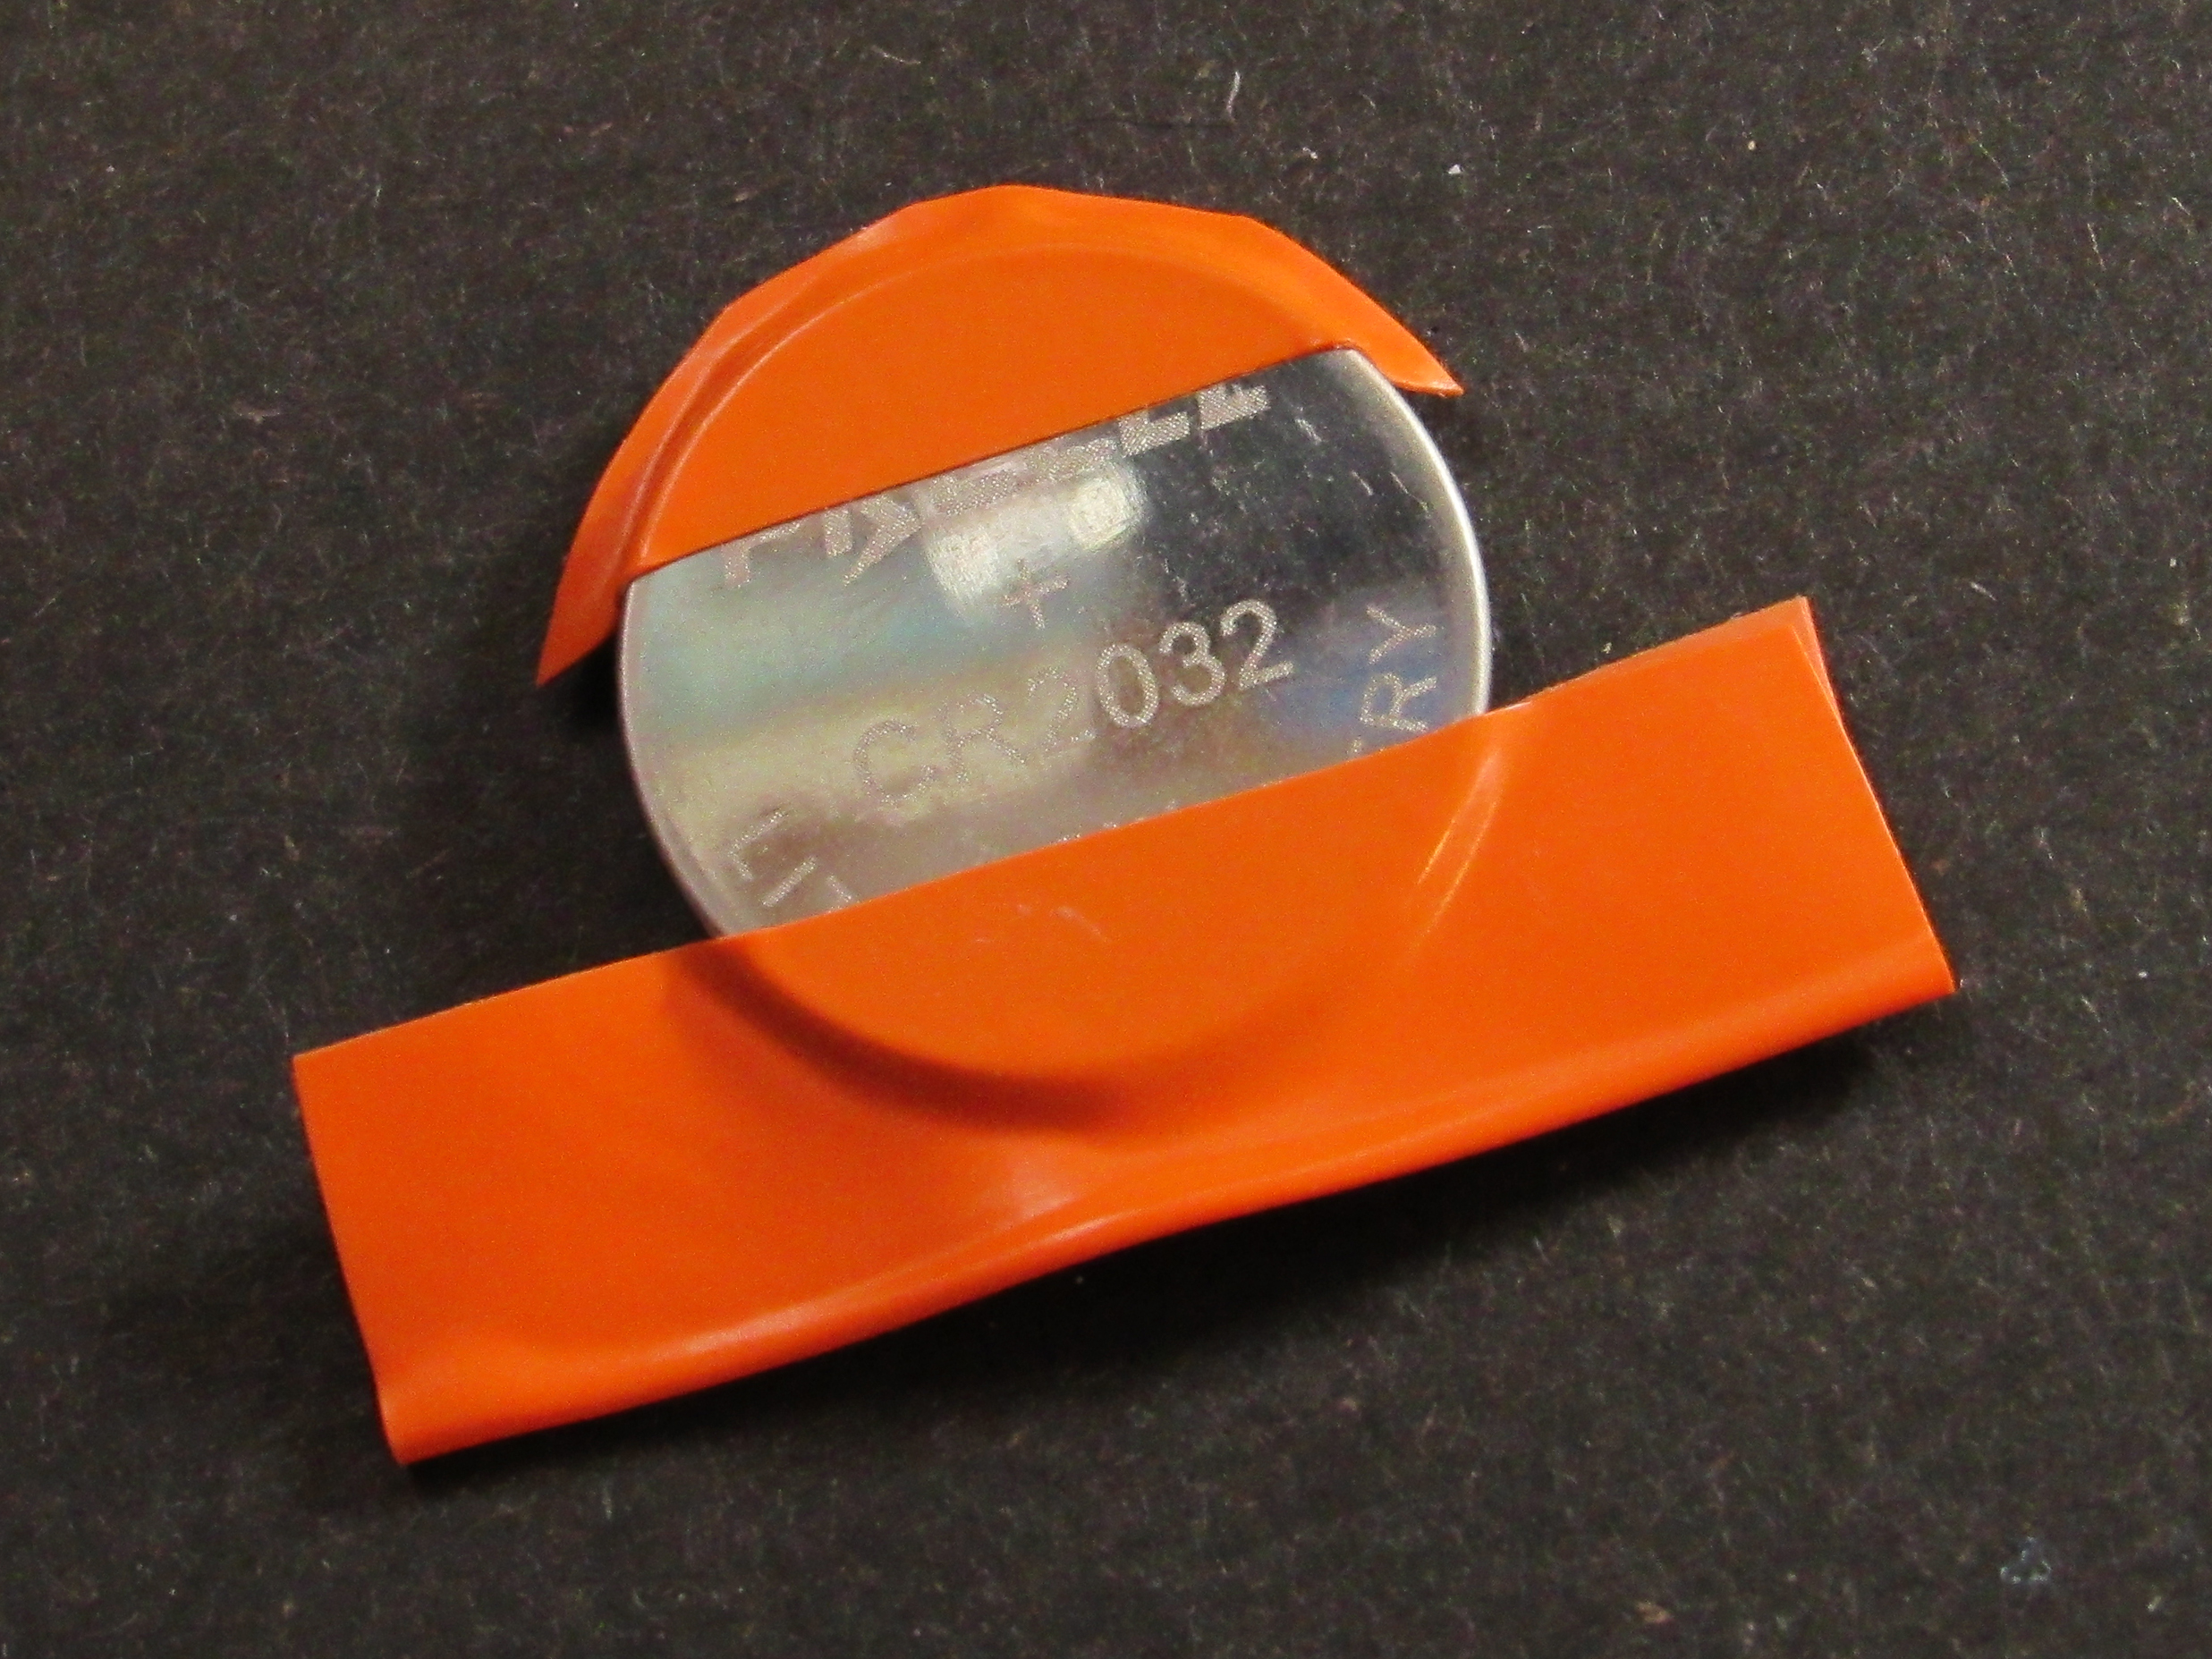 leds_13a-Taped_Battery.jpg